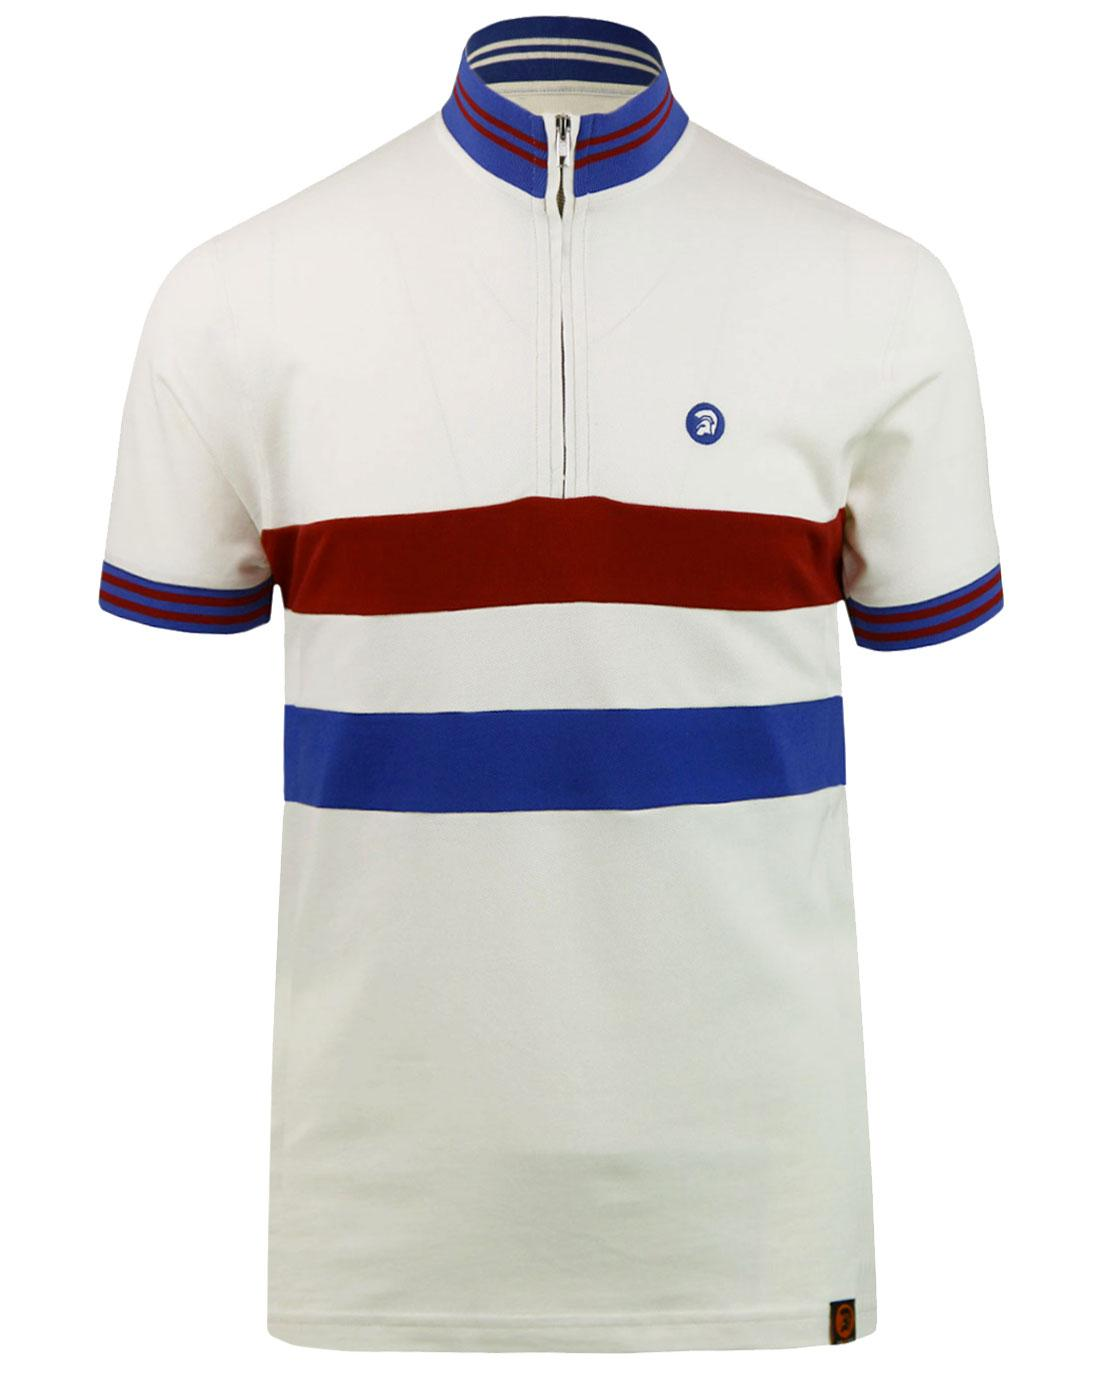 TROJAN RECORDS Retro Mod Chest Stripe Cycling Top